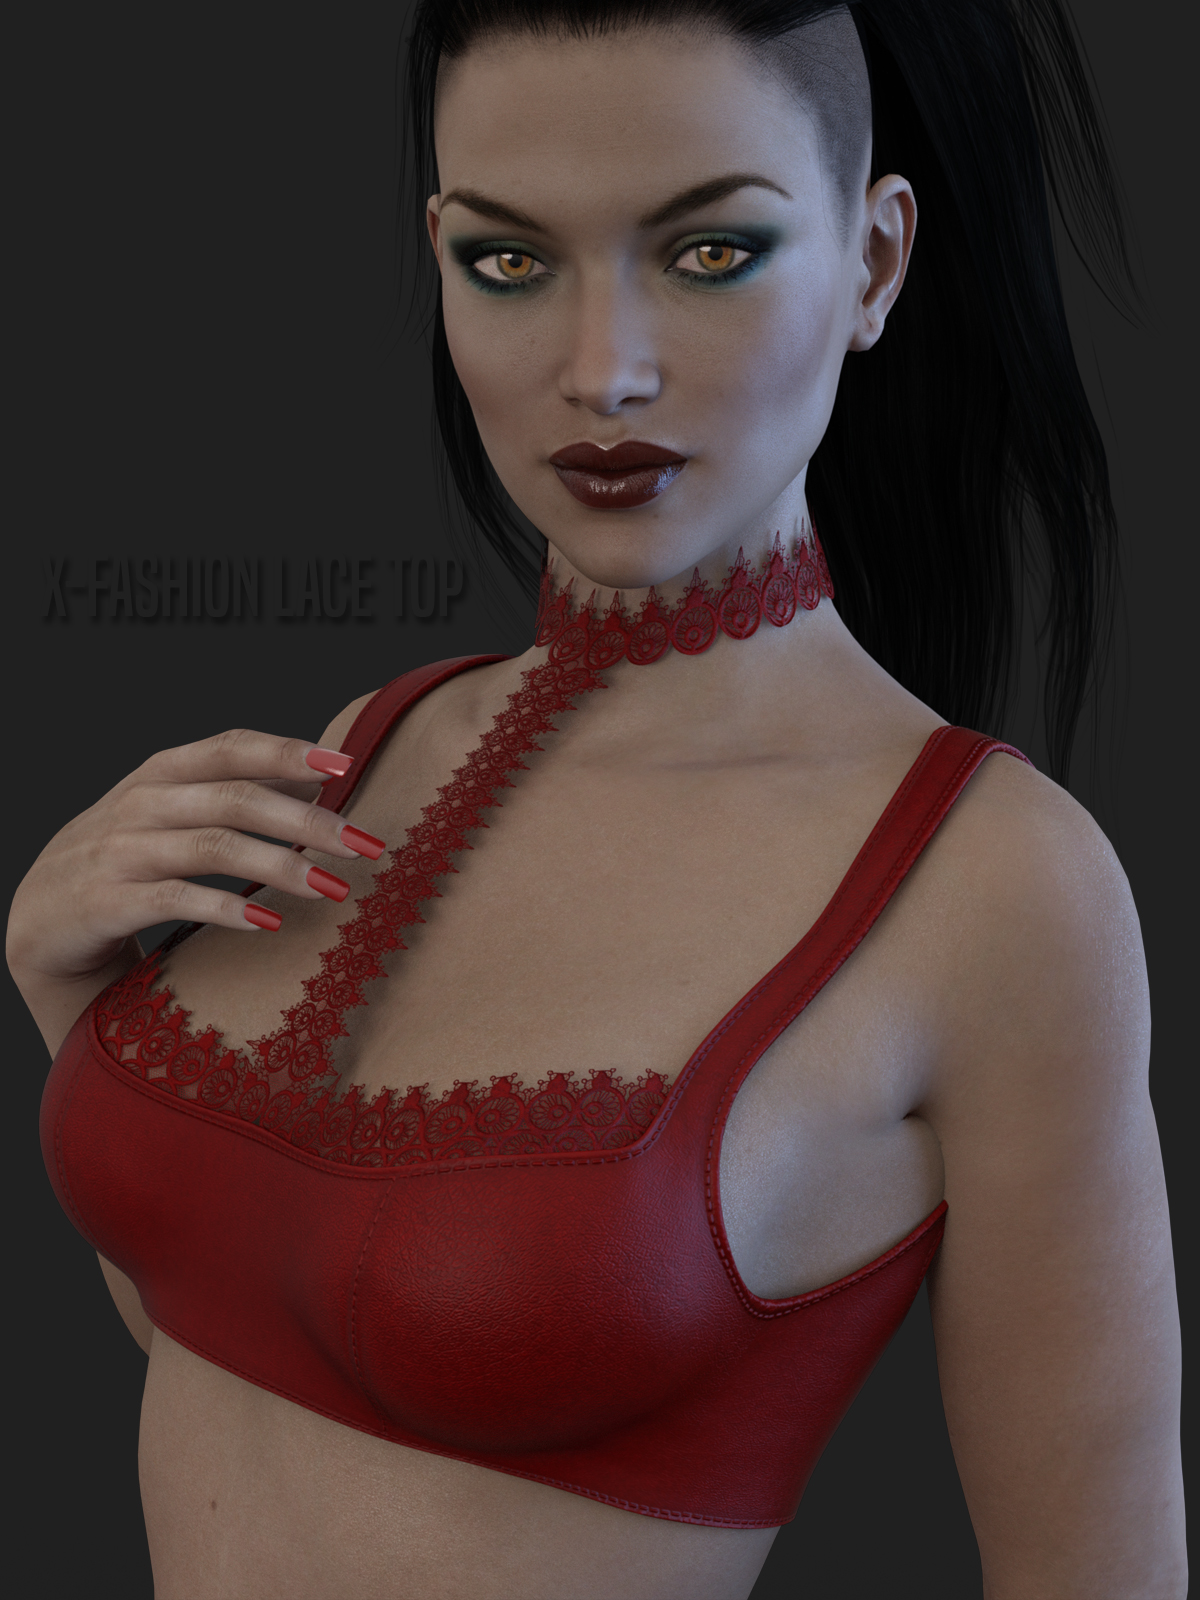 X-Fashion Lace Top for Genesis 3 Females